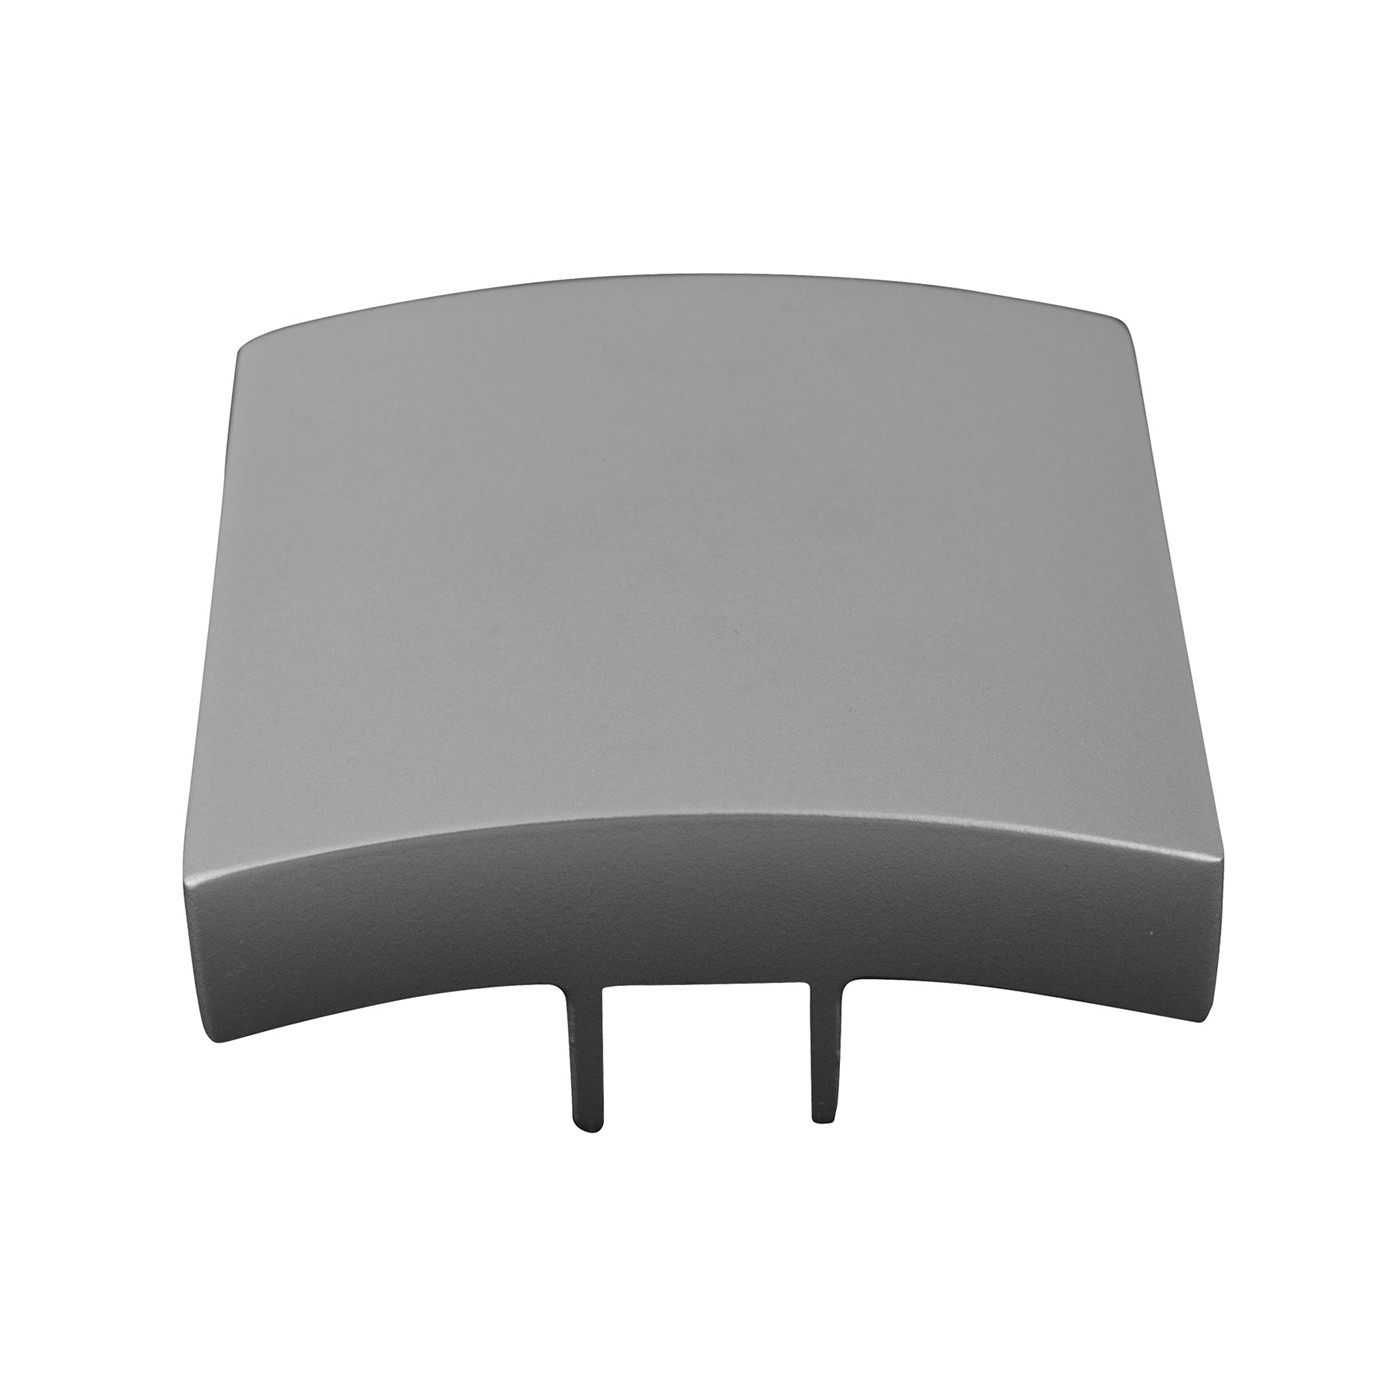 Artemide Tizio 50 replacement part lower counterbalance, silver grey